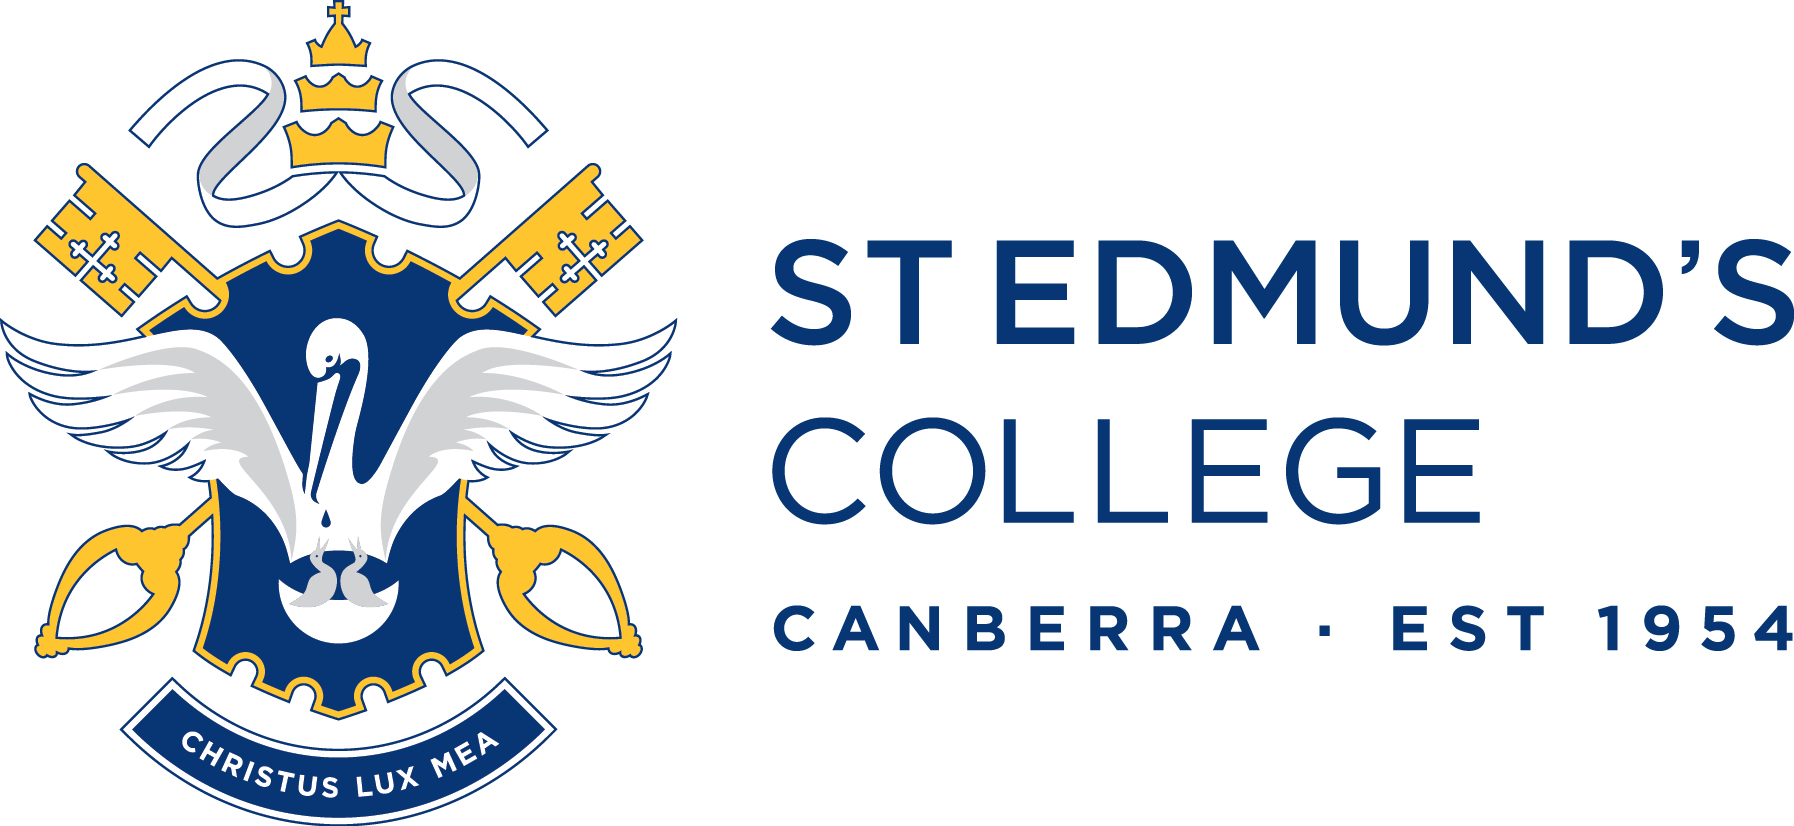 St Edmund's College Canberra - Education NSW